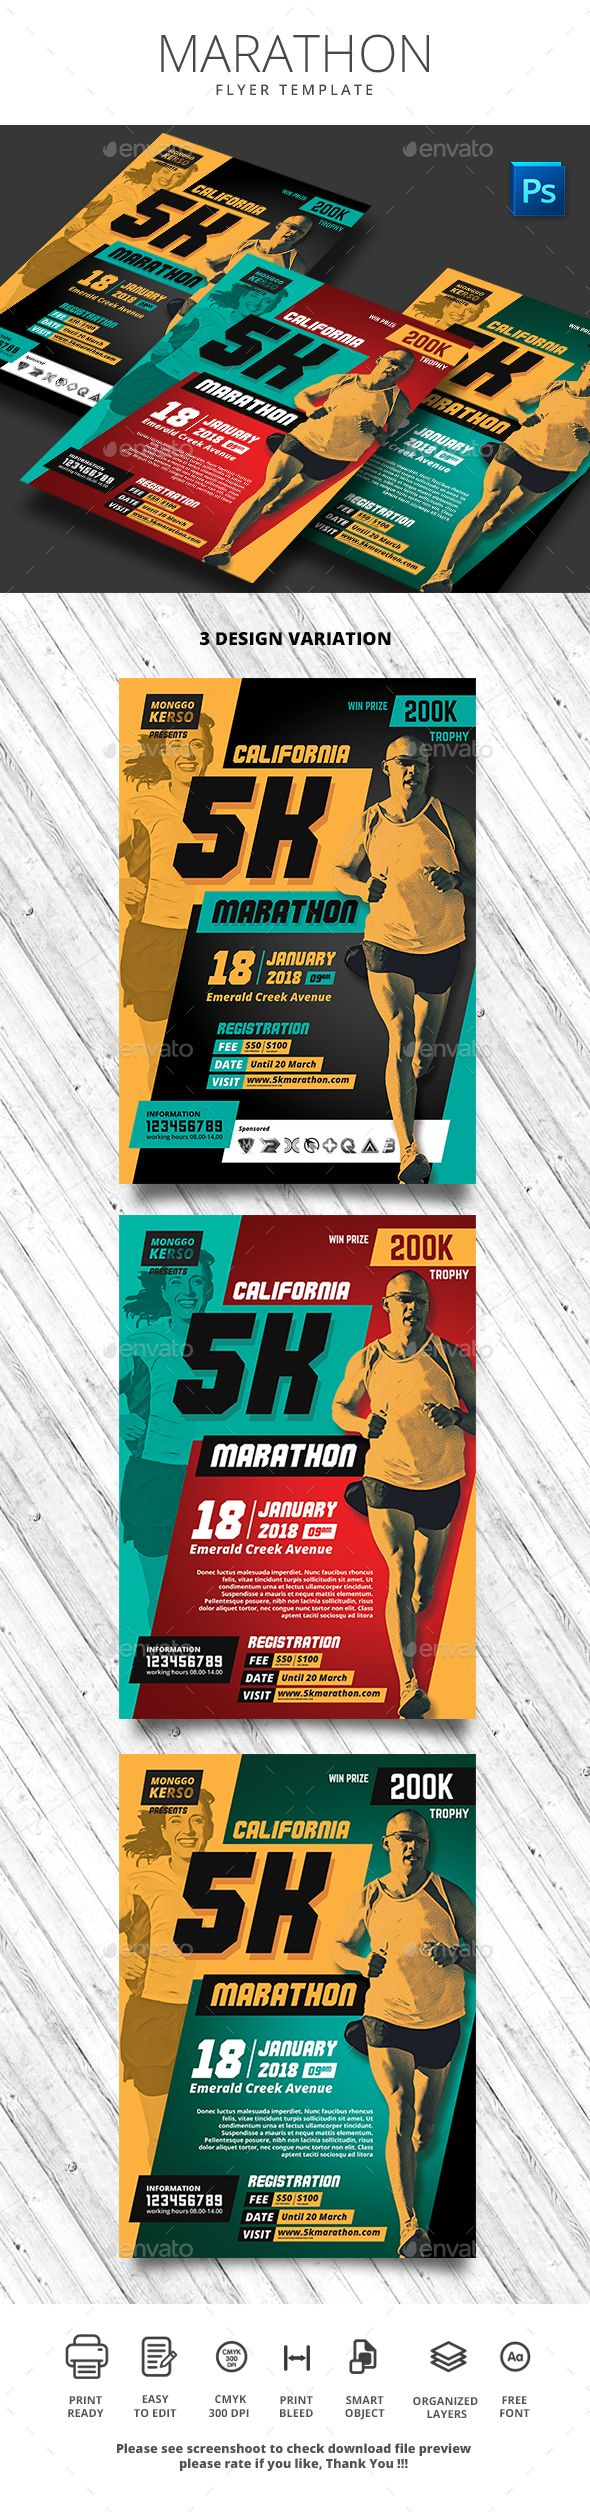 Marathon Flyer by monggokerso Marathon Flyer File Features : Size A4 210x290mm   Bleed area CMYK / 300 dpi Easy to edit text Well organized PSD file 3 Alternati